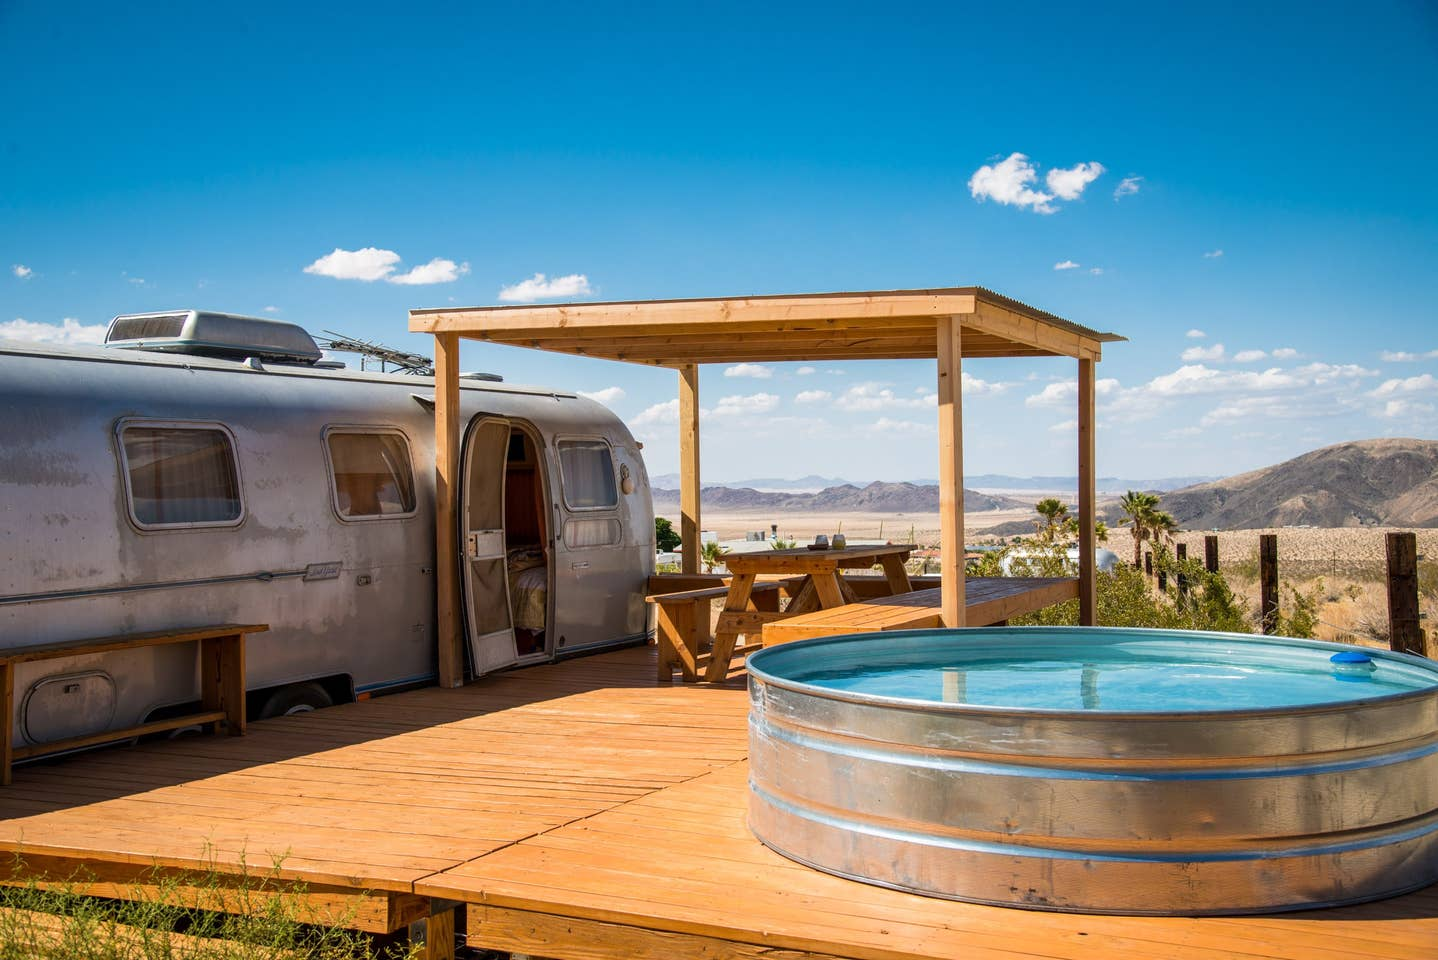 The Land Yacht in Joshua Tree - Airbnb